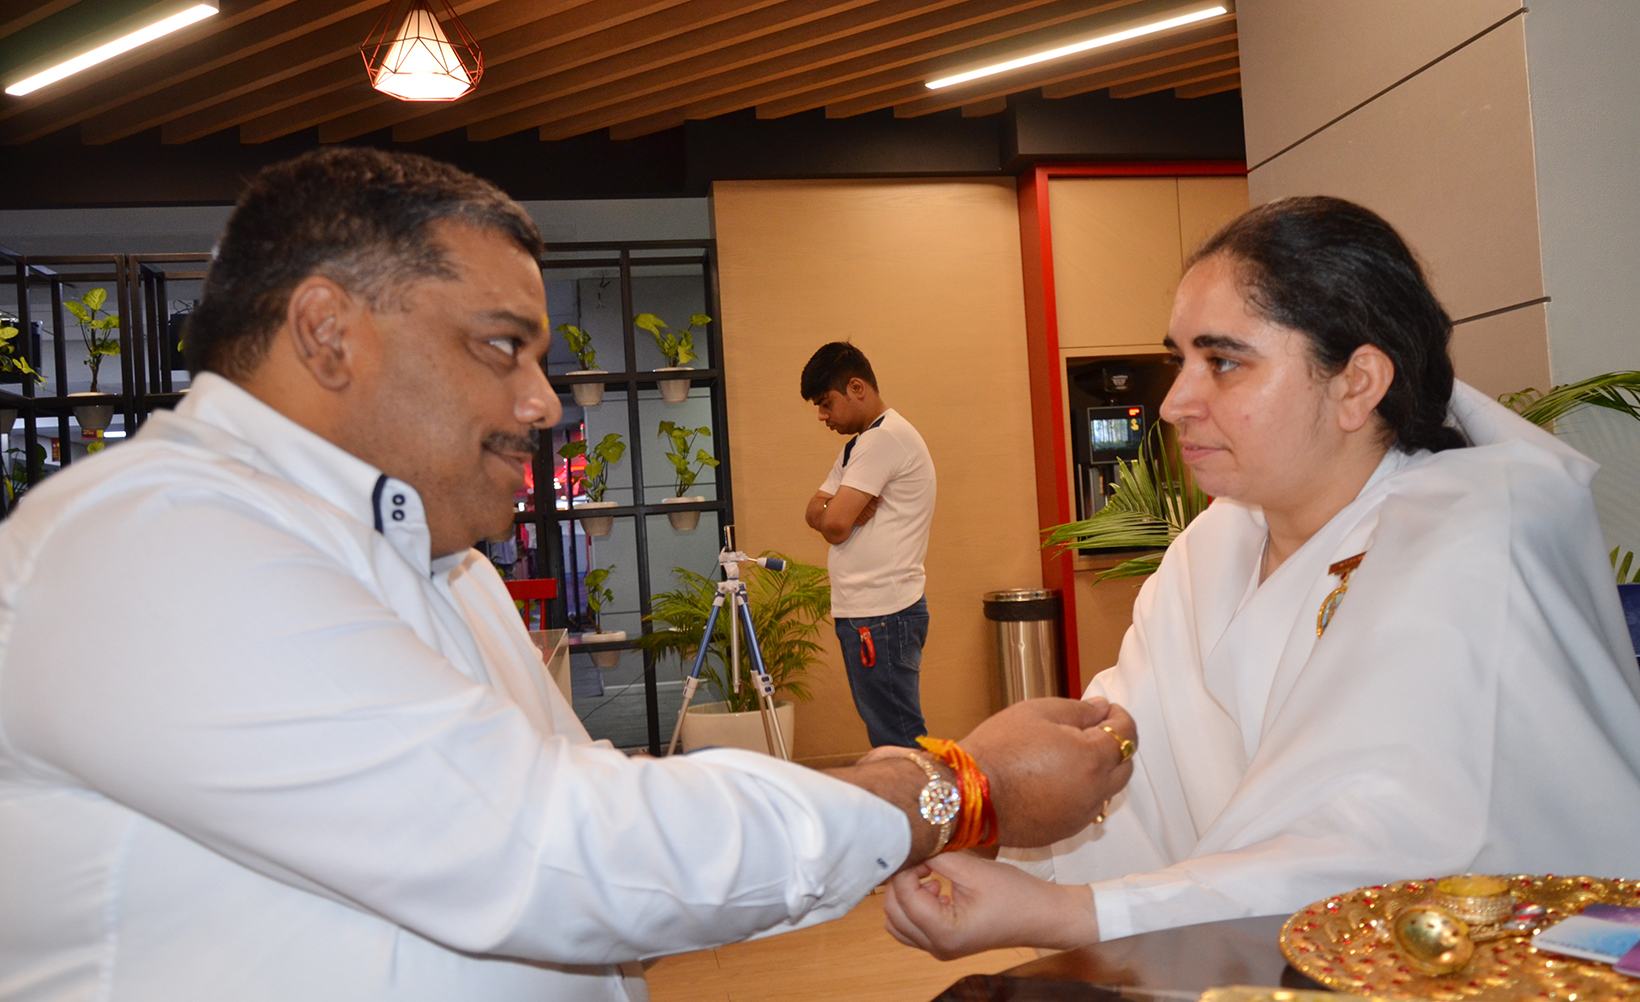 BK Aditi ties Rakhi to Supriya Prasad - Managing Editor Aaj Tak News Channel